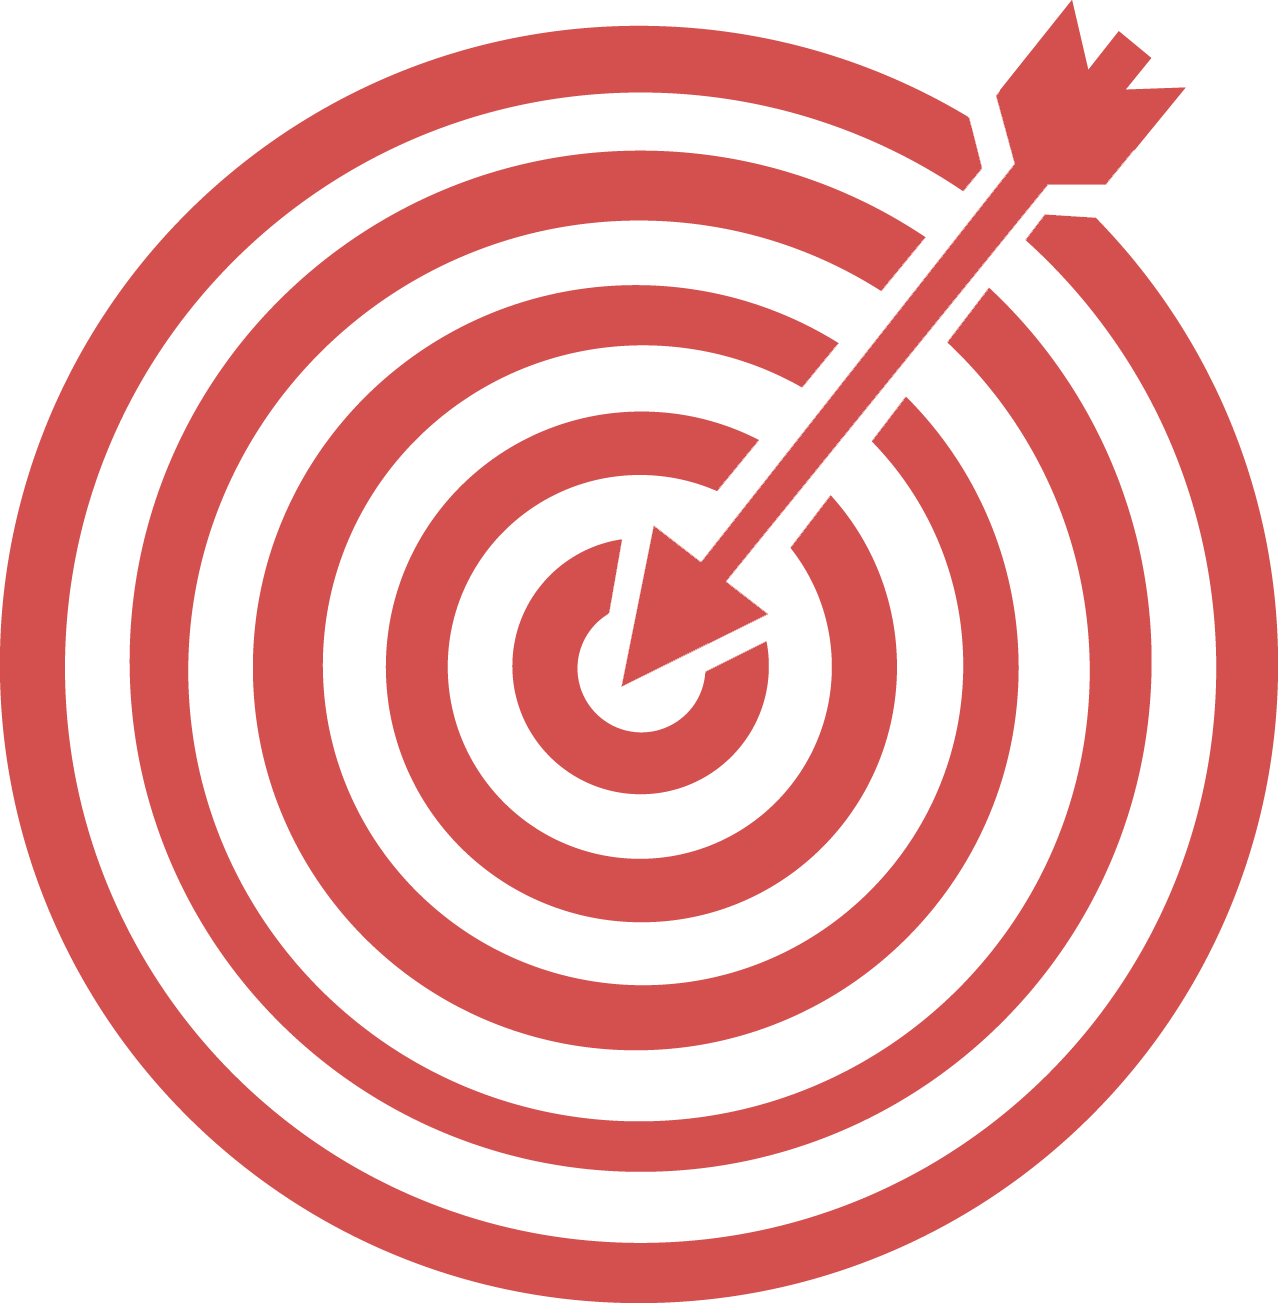 composite advantage bullseye graphic